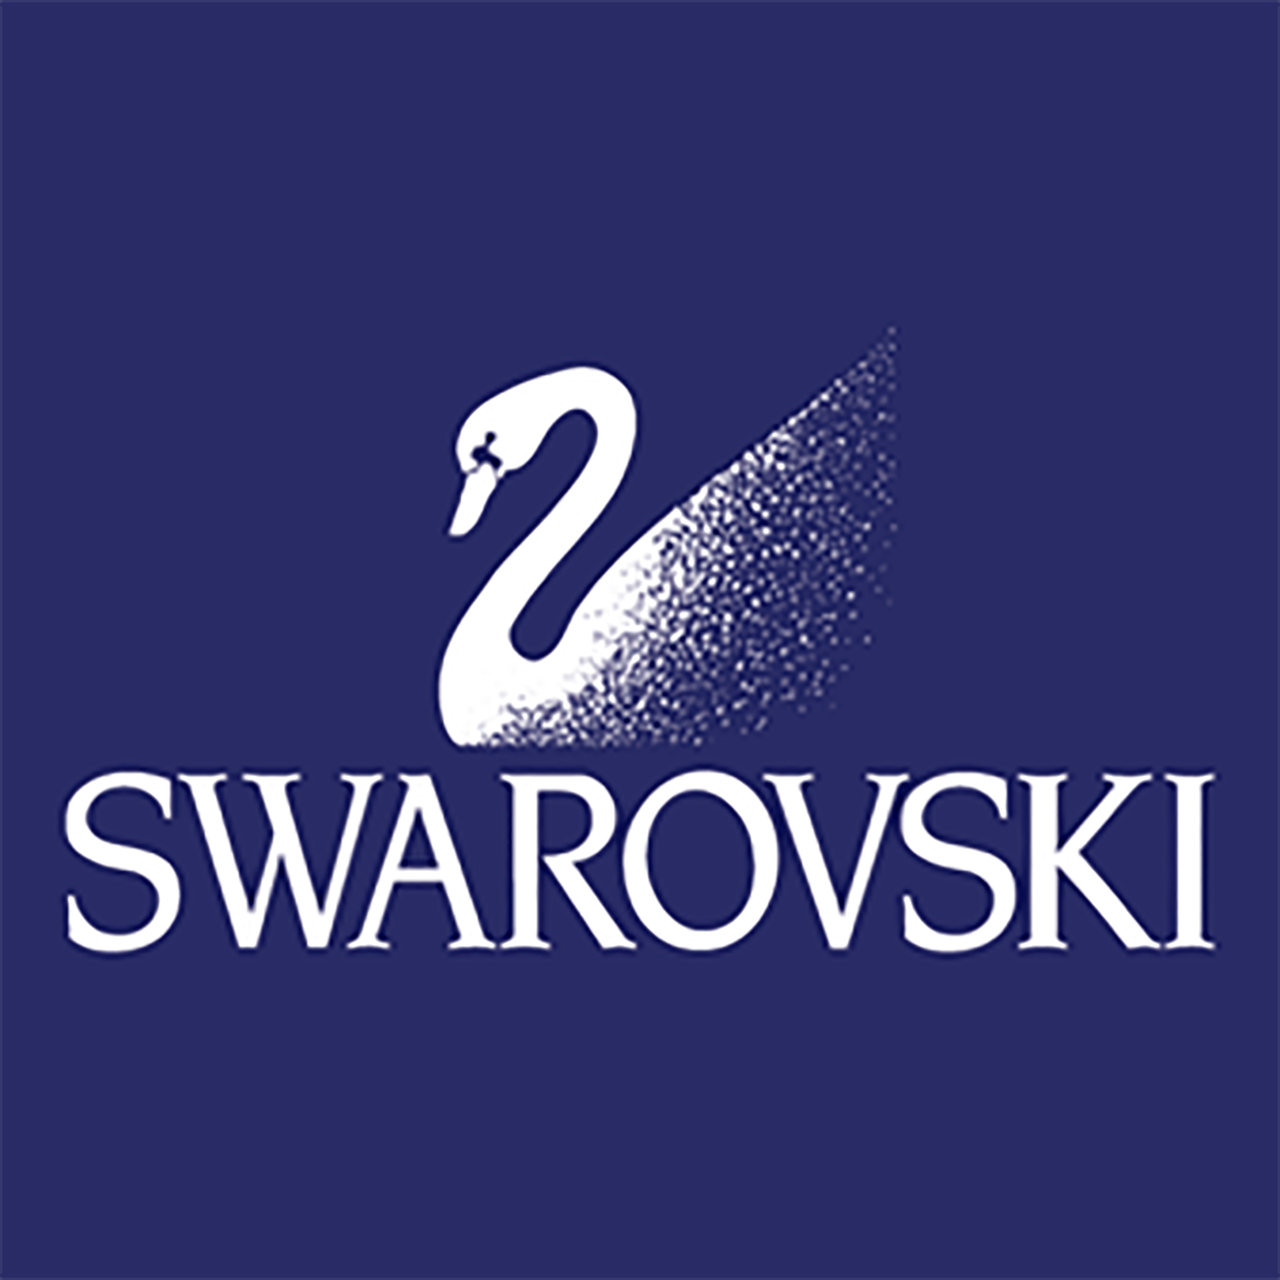 Swarovski Magic Light - FW 19 collection